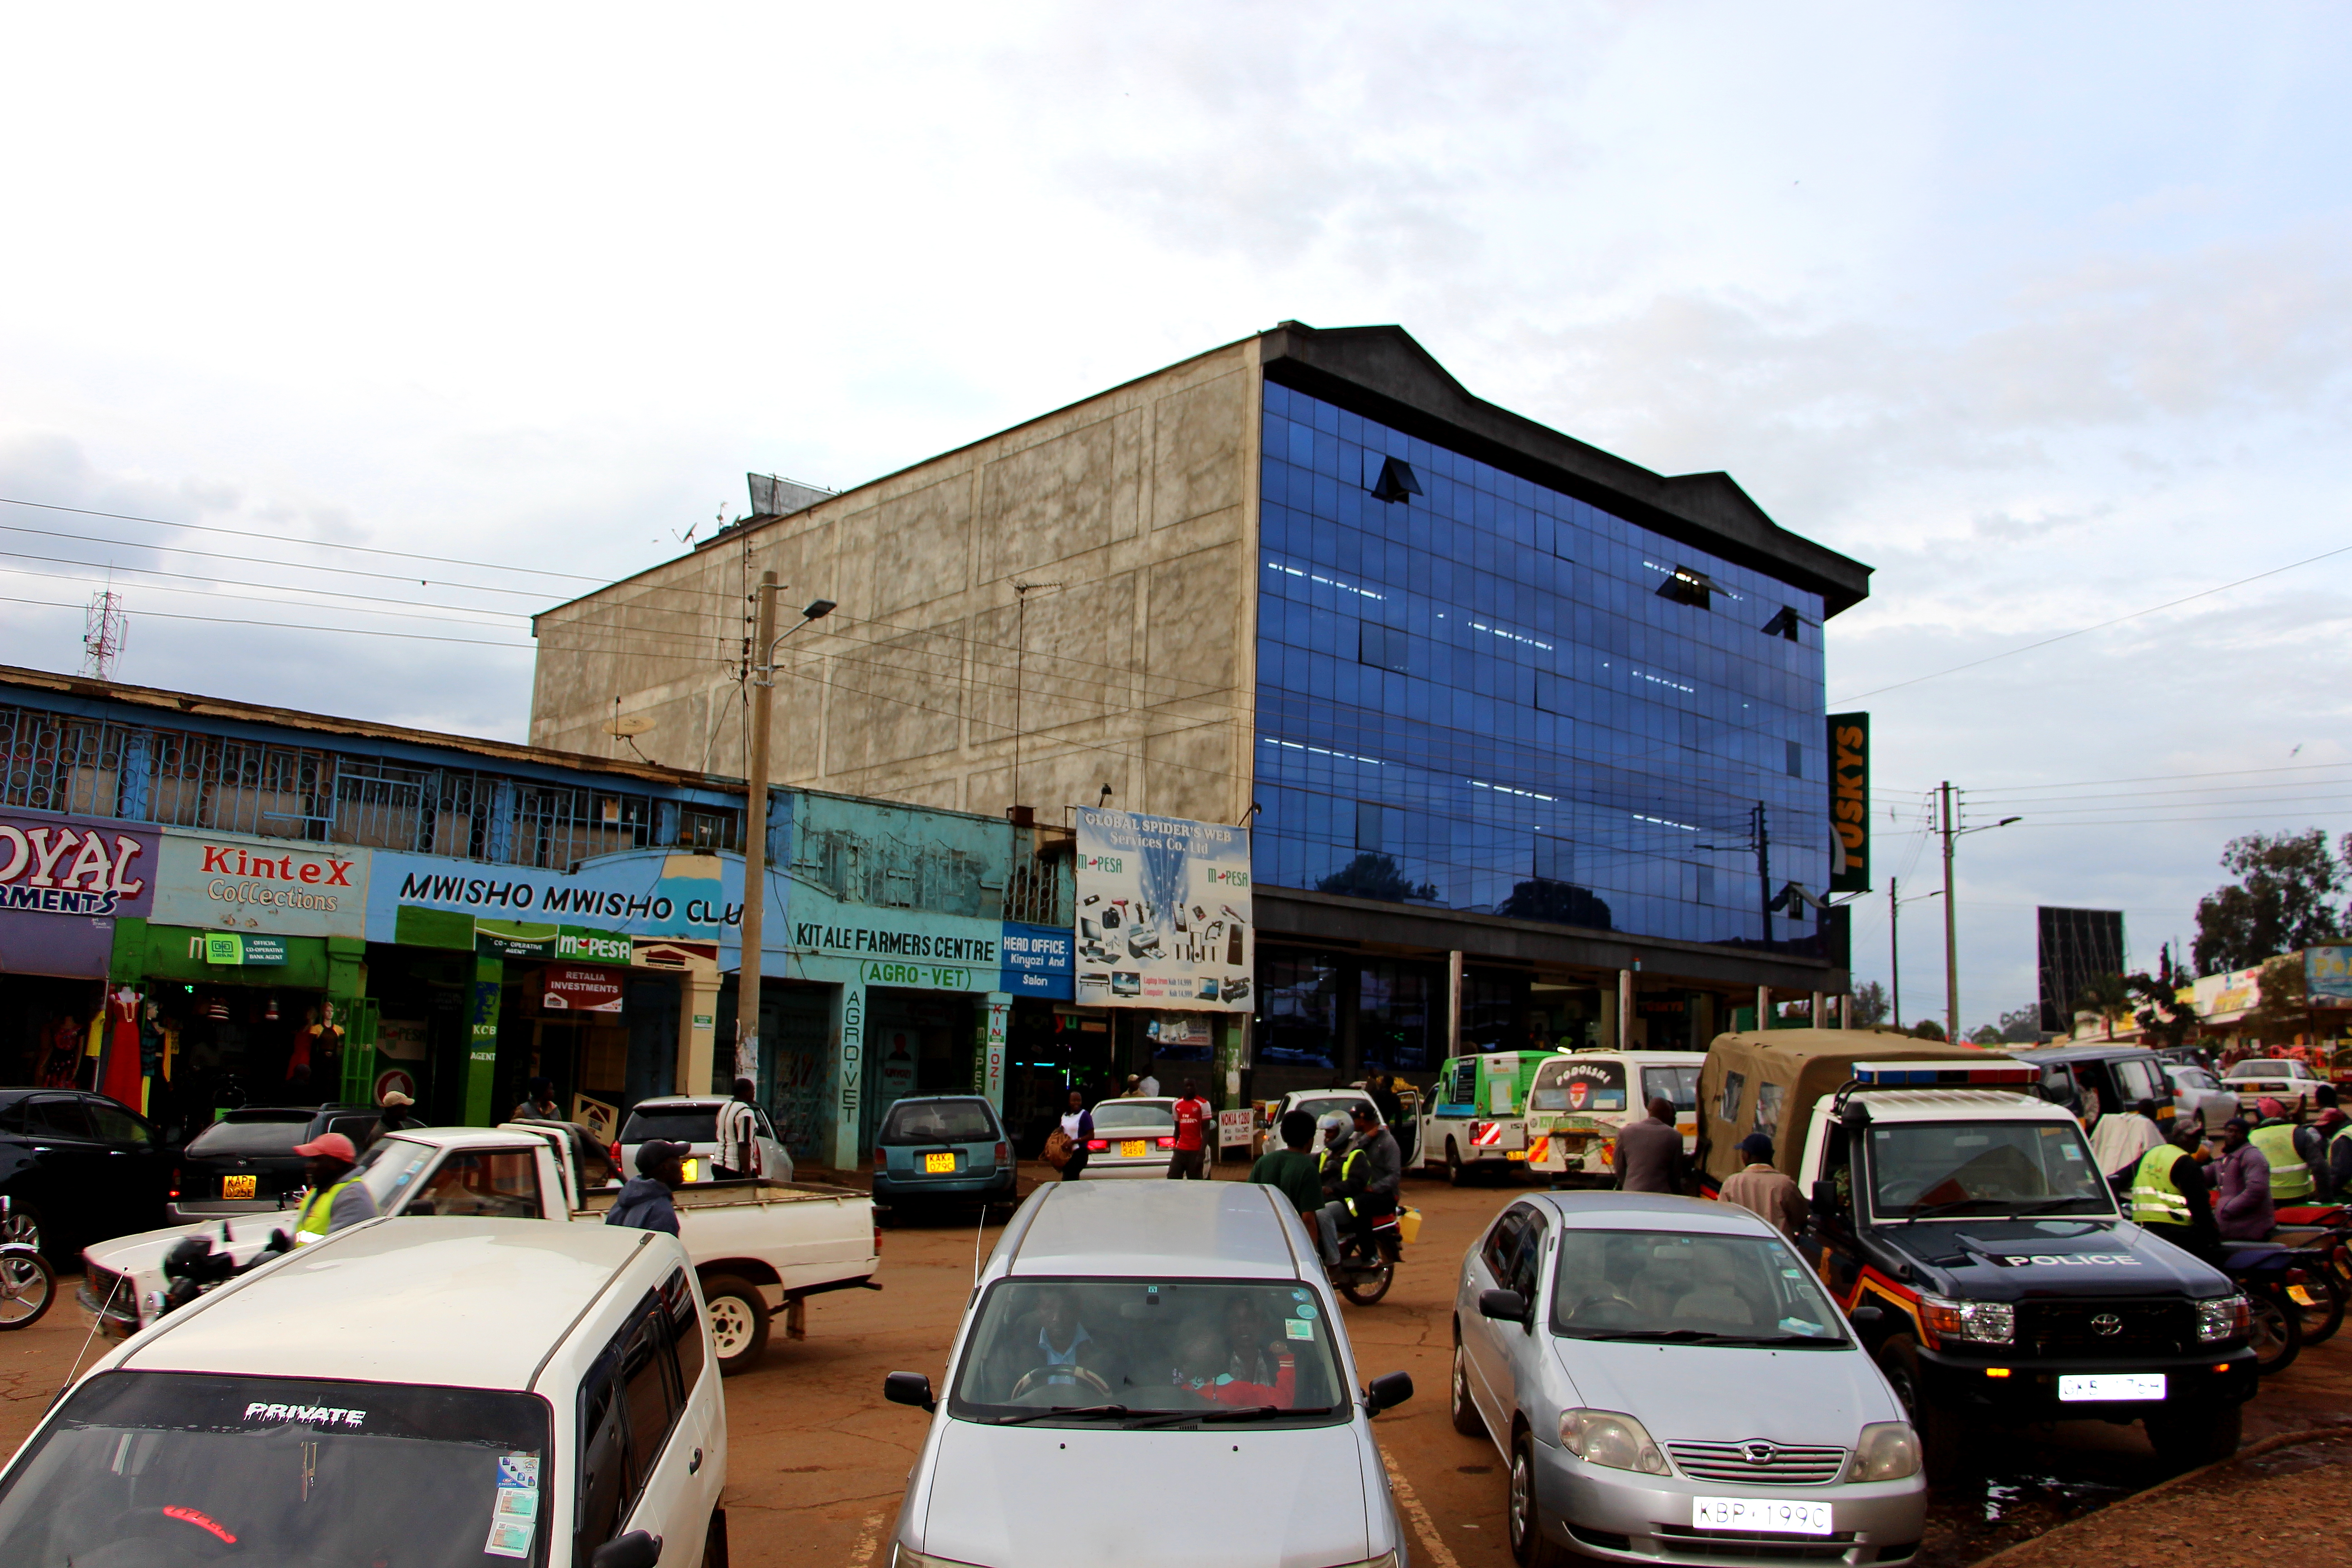 buildings along the road in Kitale, Kenya